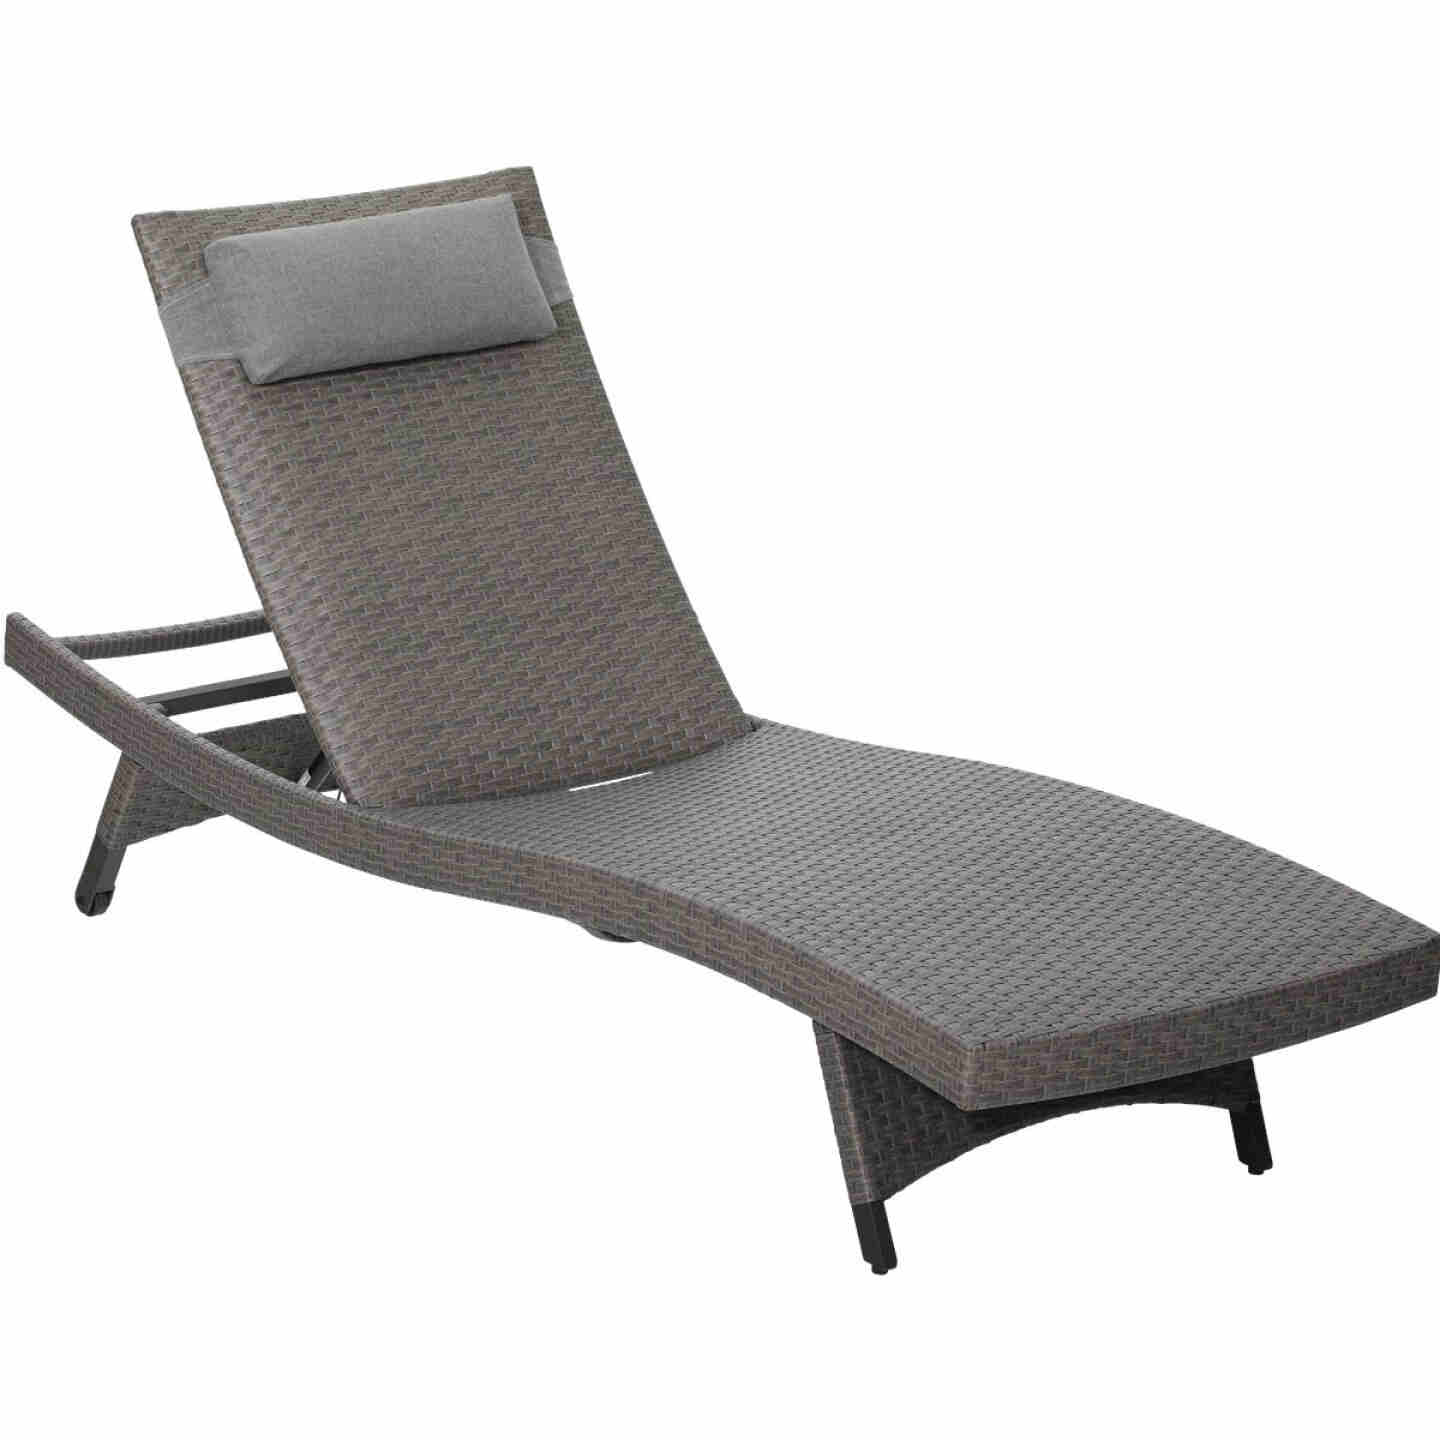 Pacific Casual Park Ridge Aluminum Chaise Lounge Image 1